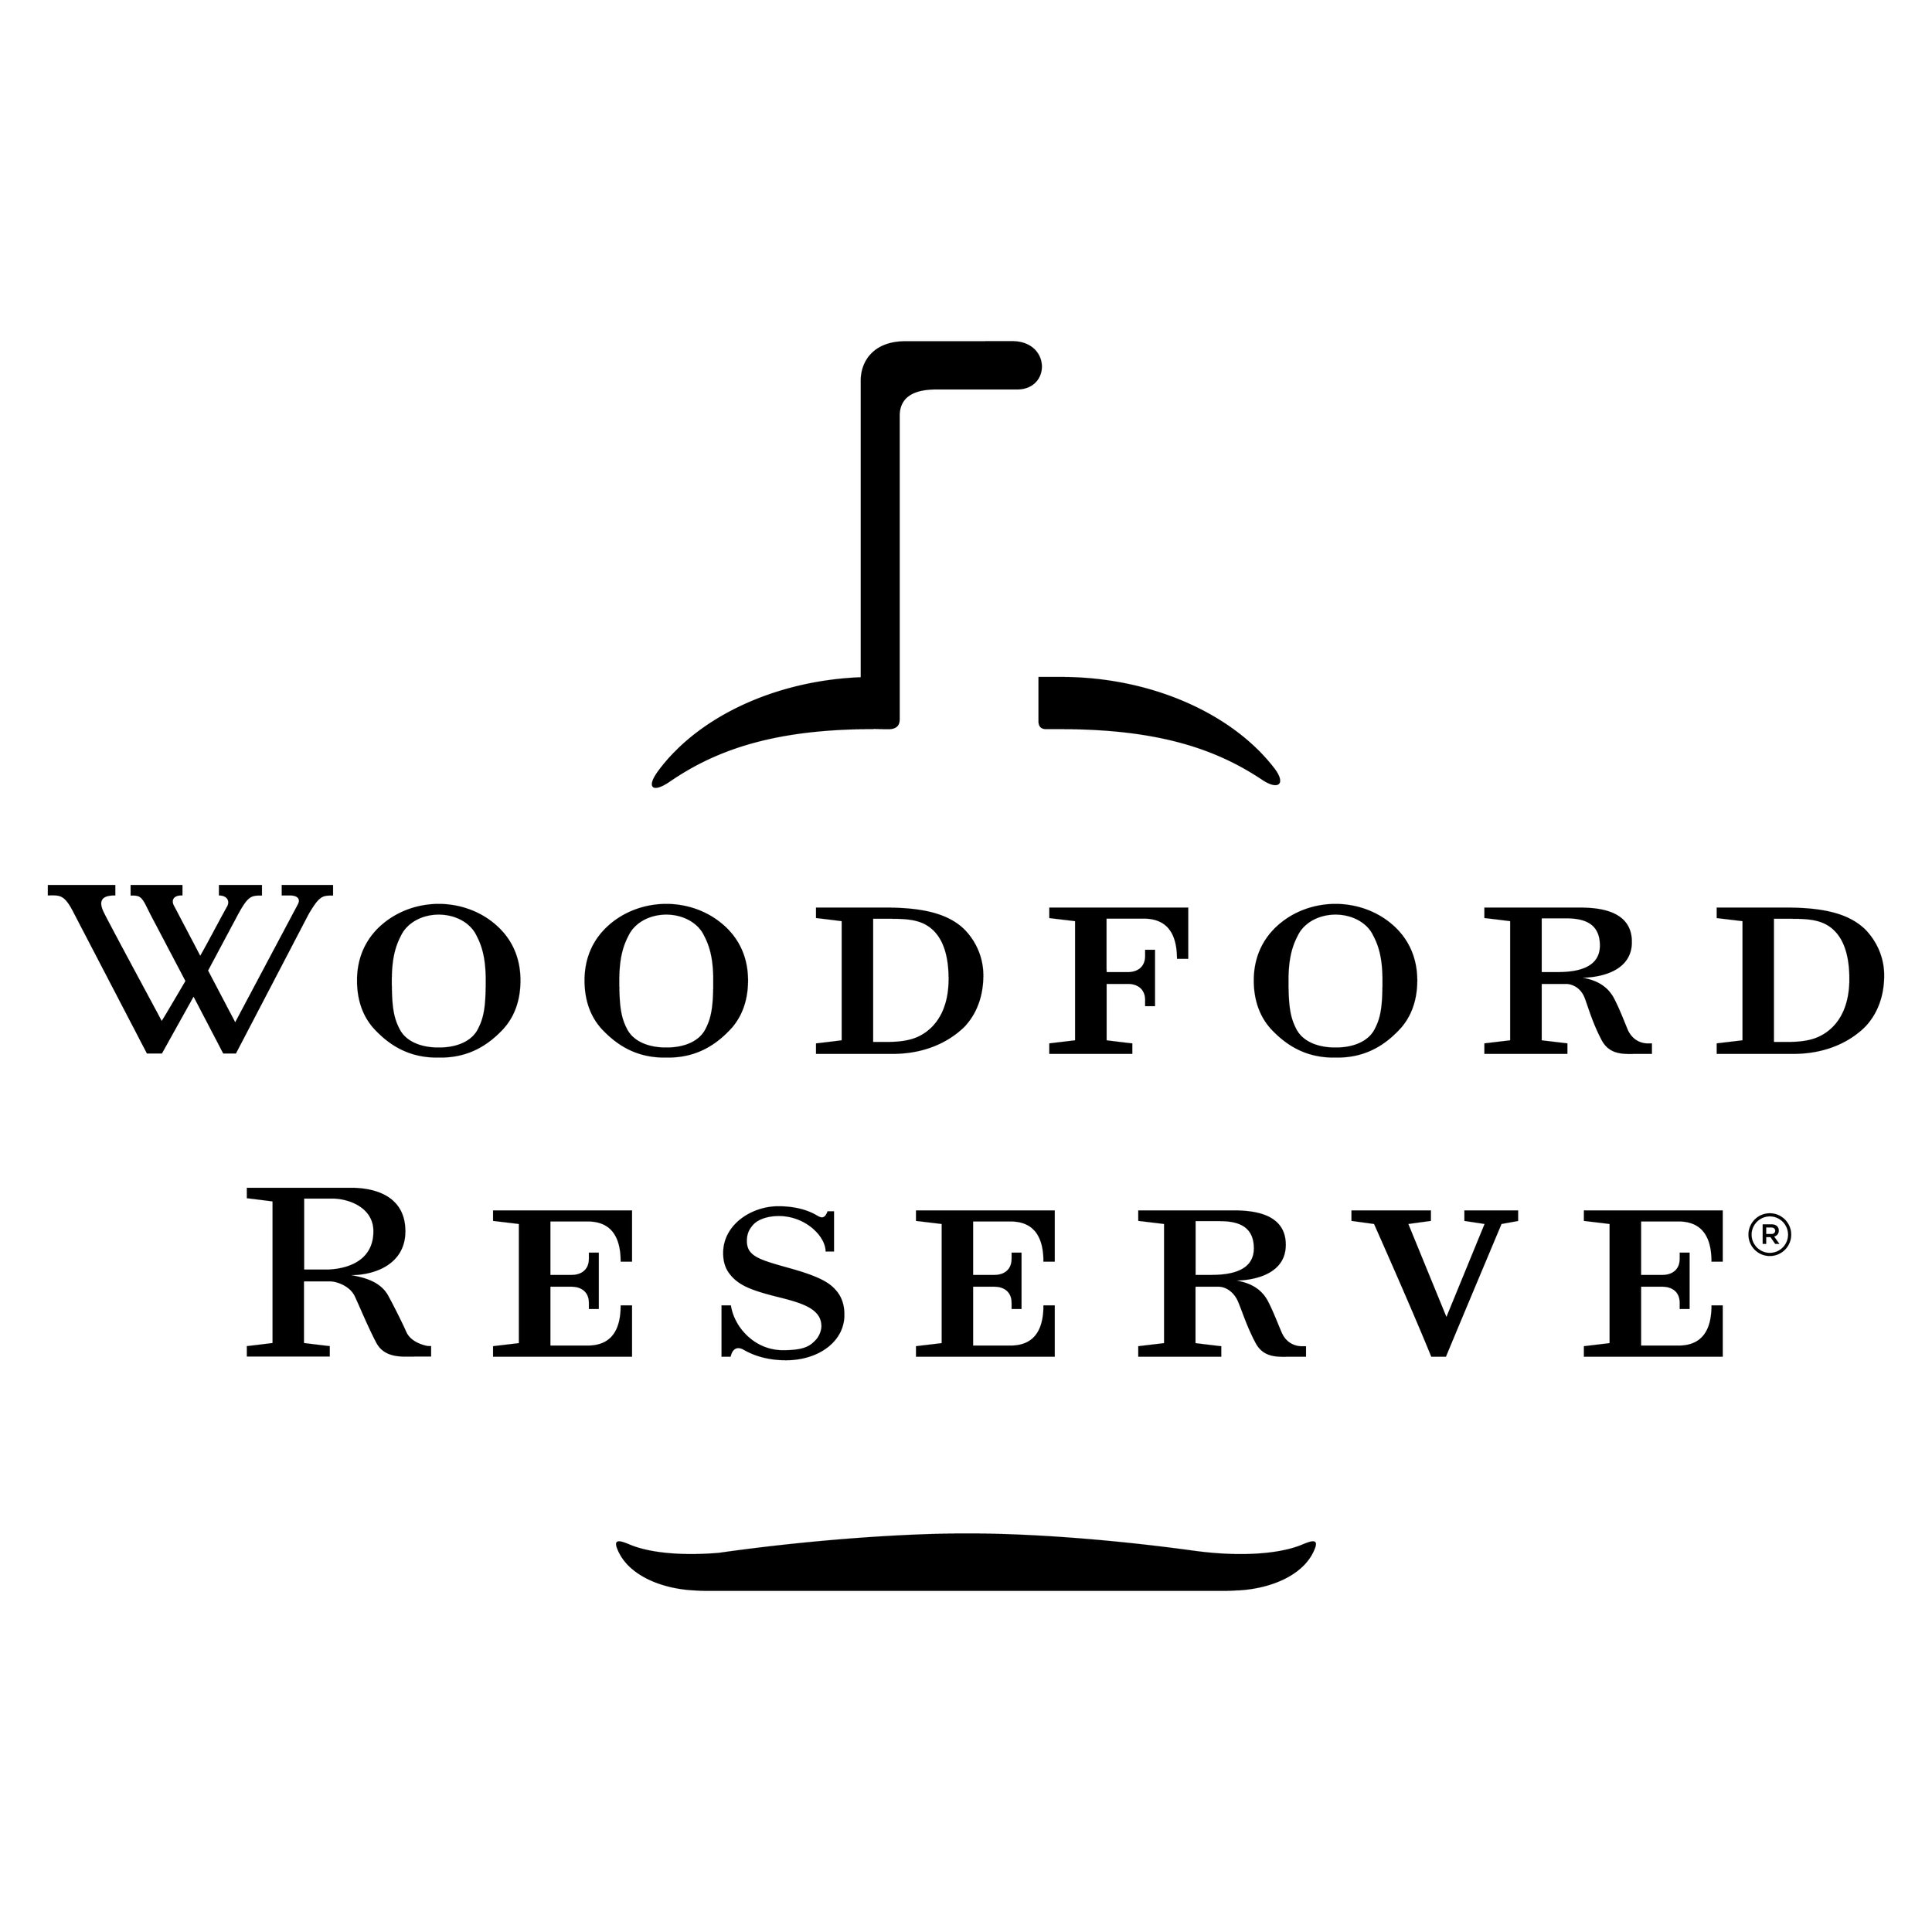 237337_Woodford_Reseserve__Black_Masterbrand_Lockup_Logo__Vertical_Stacked_preview.jpg